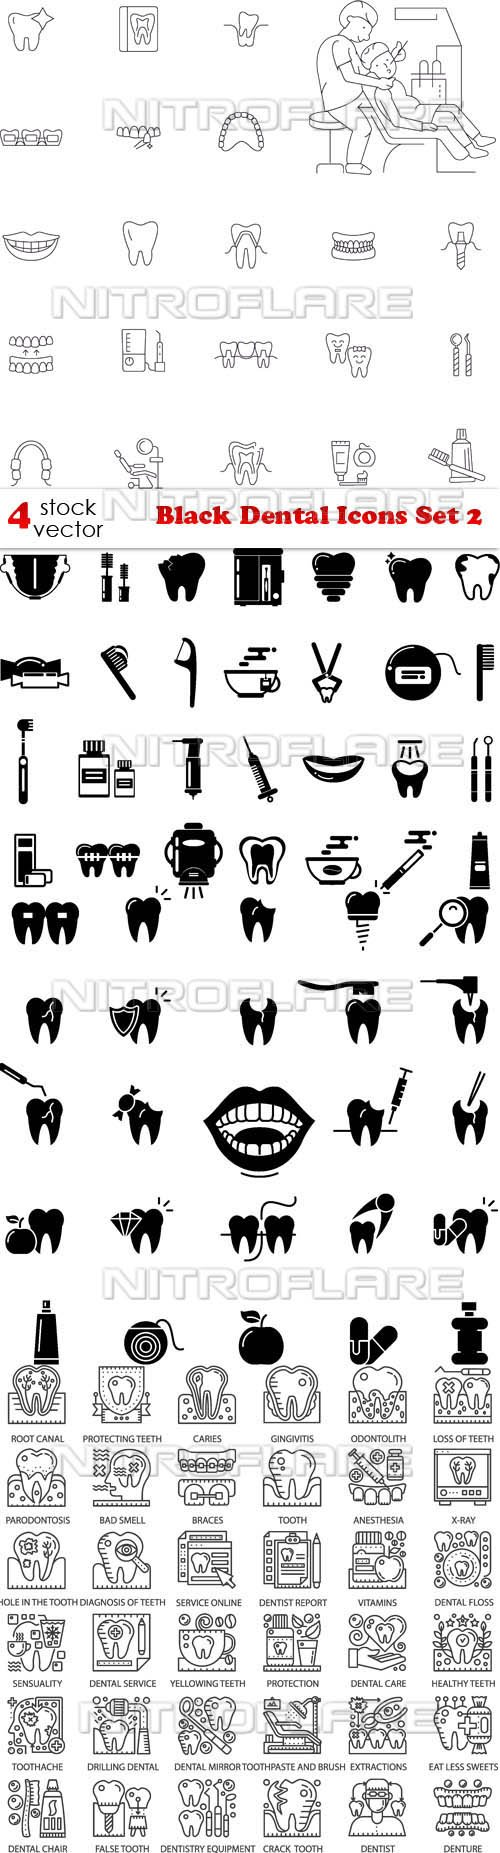 Vectors - Black Dental Icons Set 2